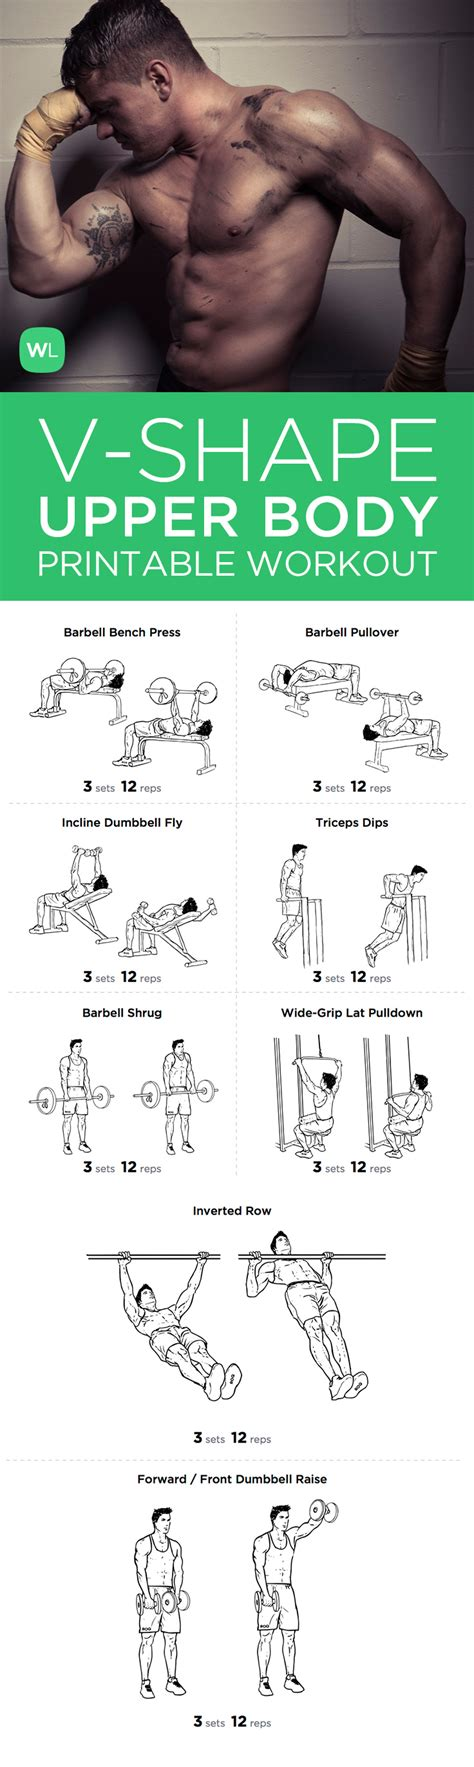 v shape printable workout plan for chest